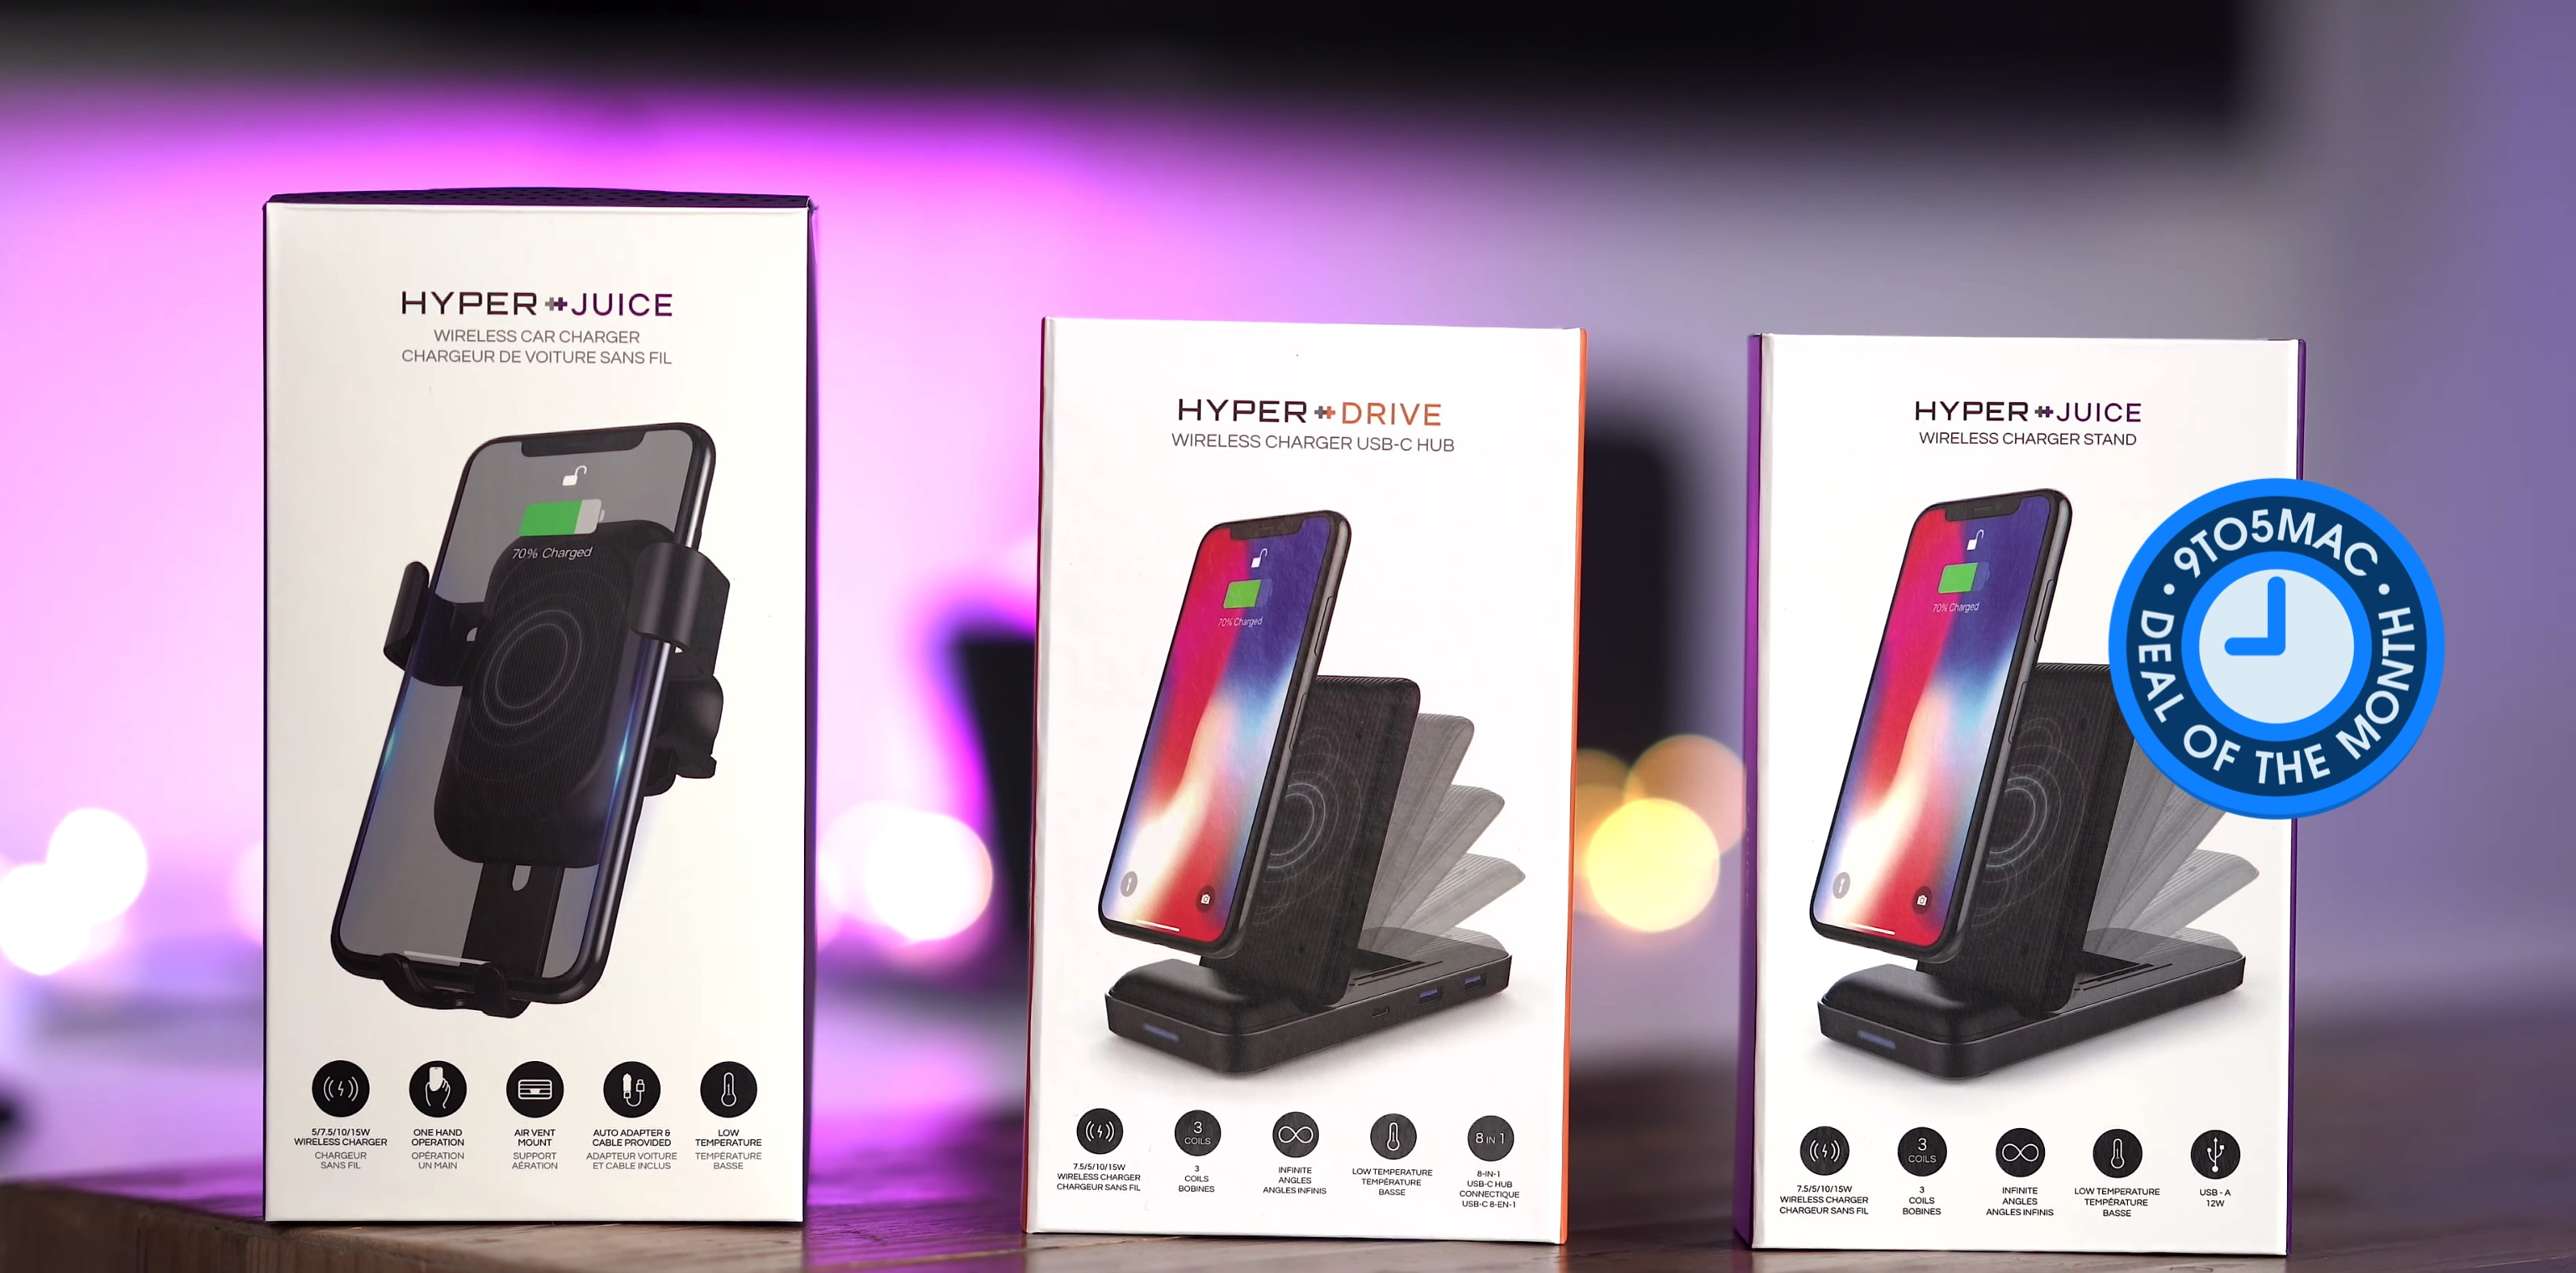 Deal of the Month: Get 50% off HyperDrive wireless charger + USB hub, car charger & more